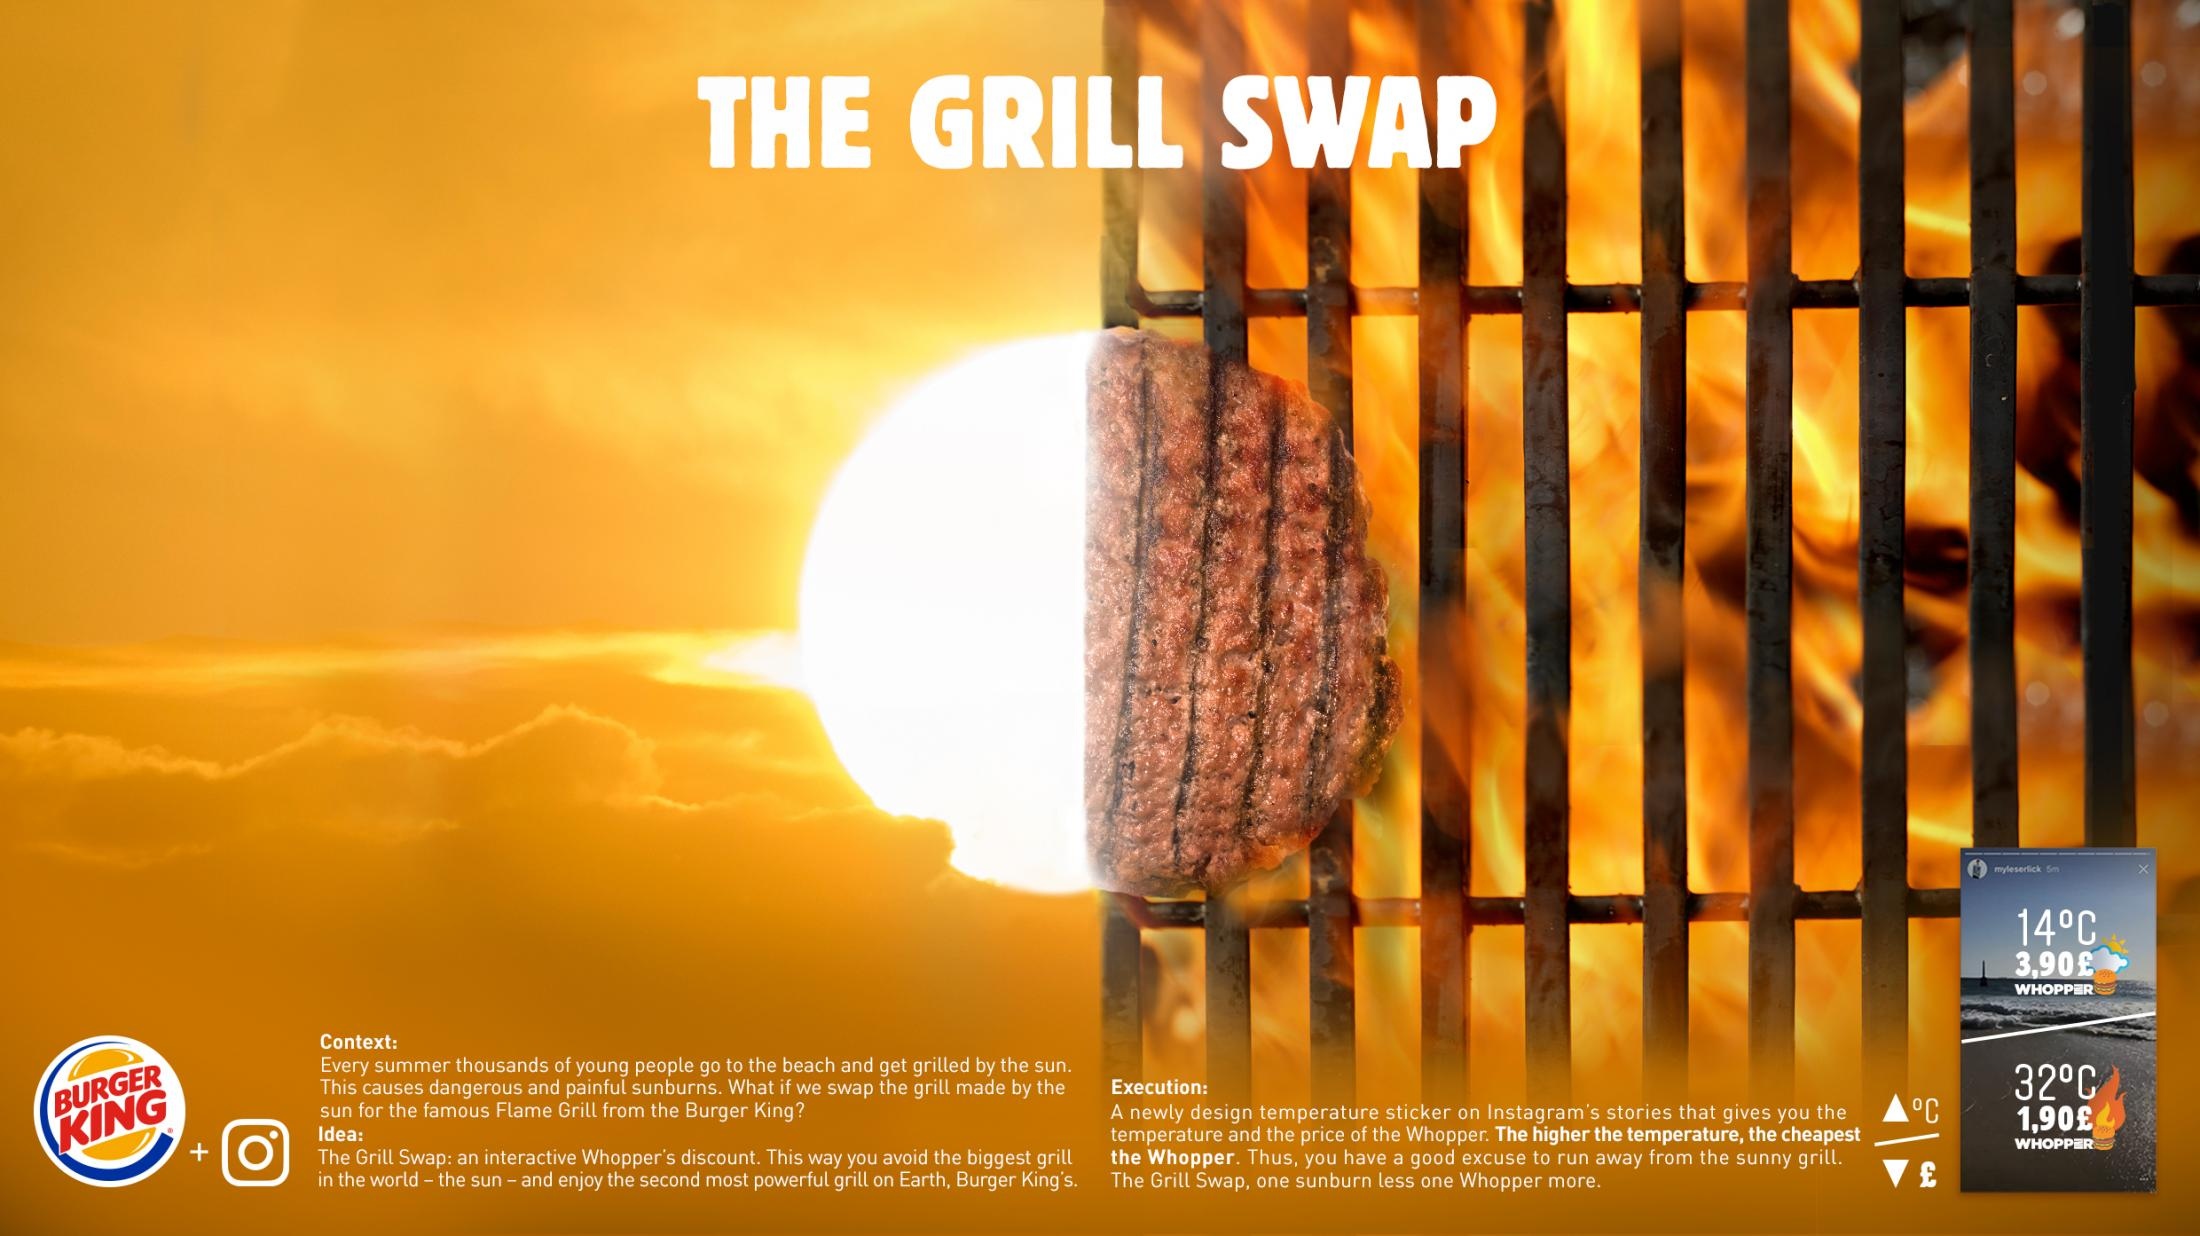 Burger King Digital Ad - The Grill Swap